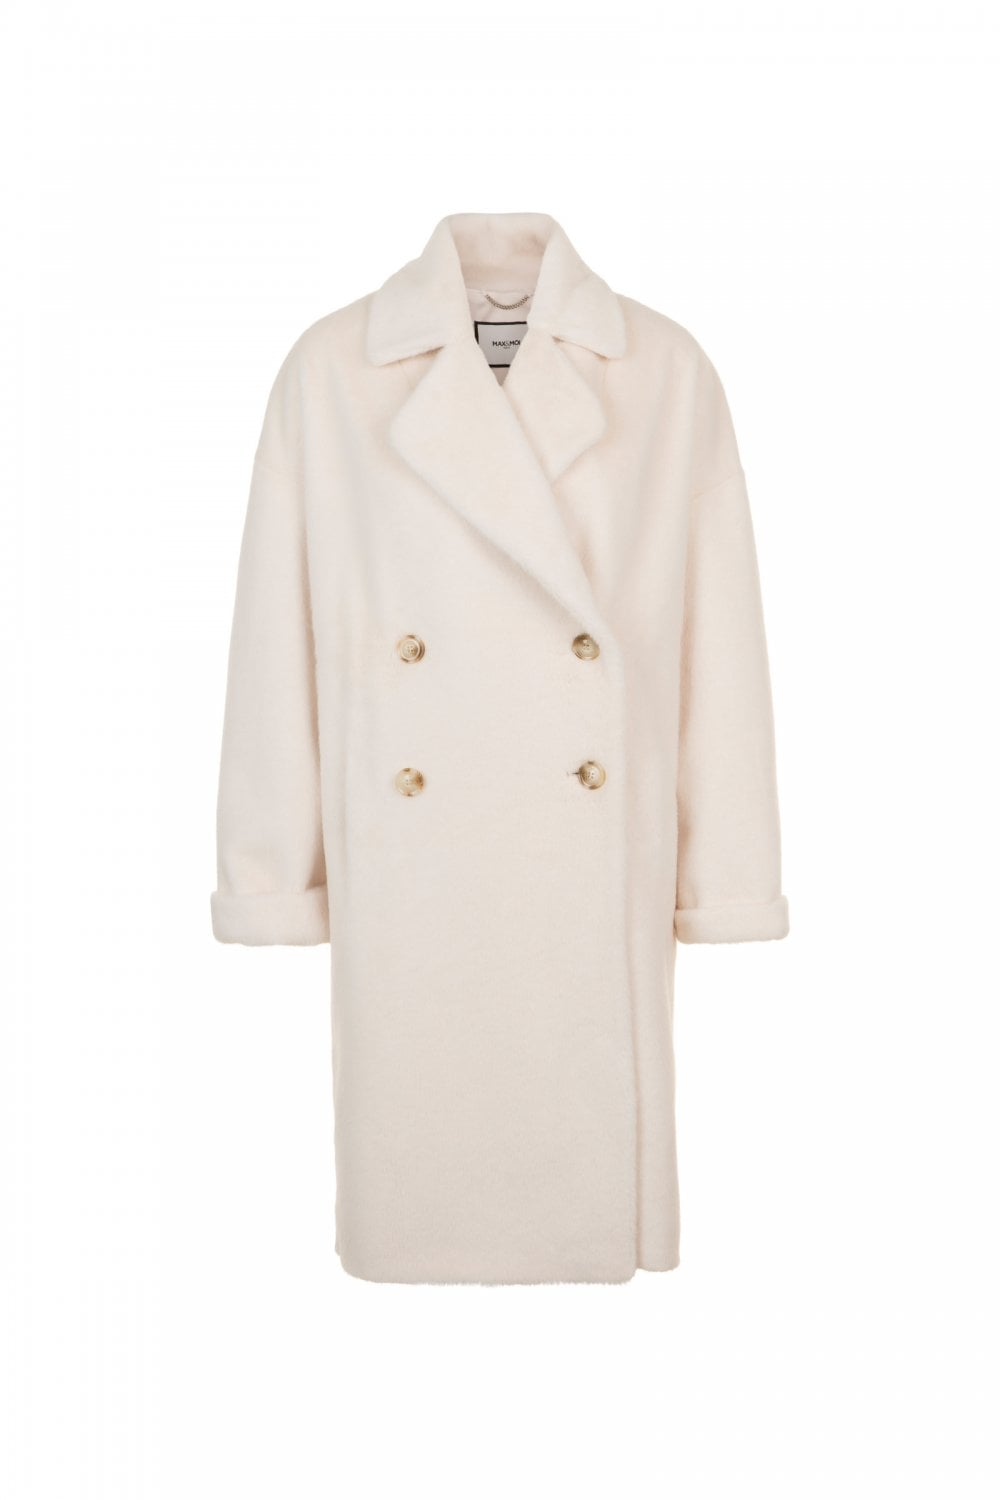 Women's Max & Moi Mady Faux Fur Coat in Cream